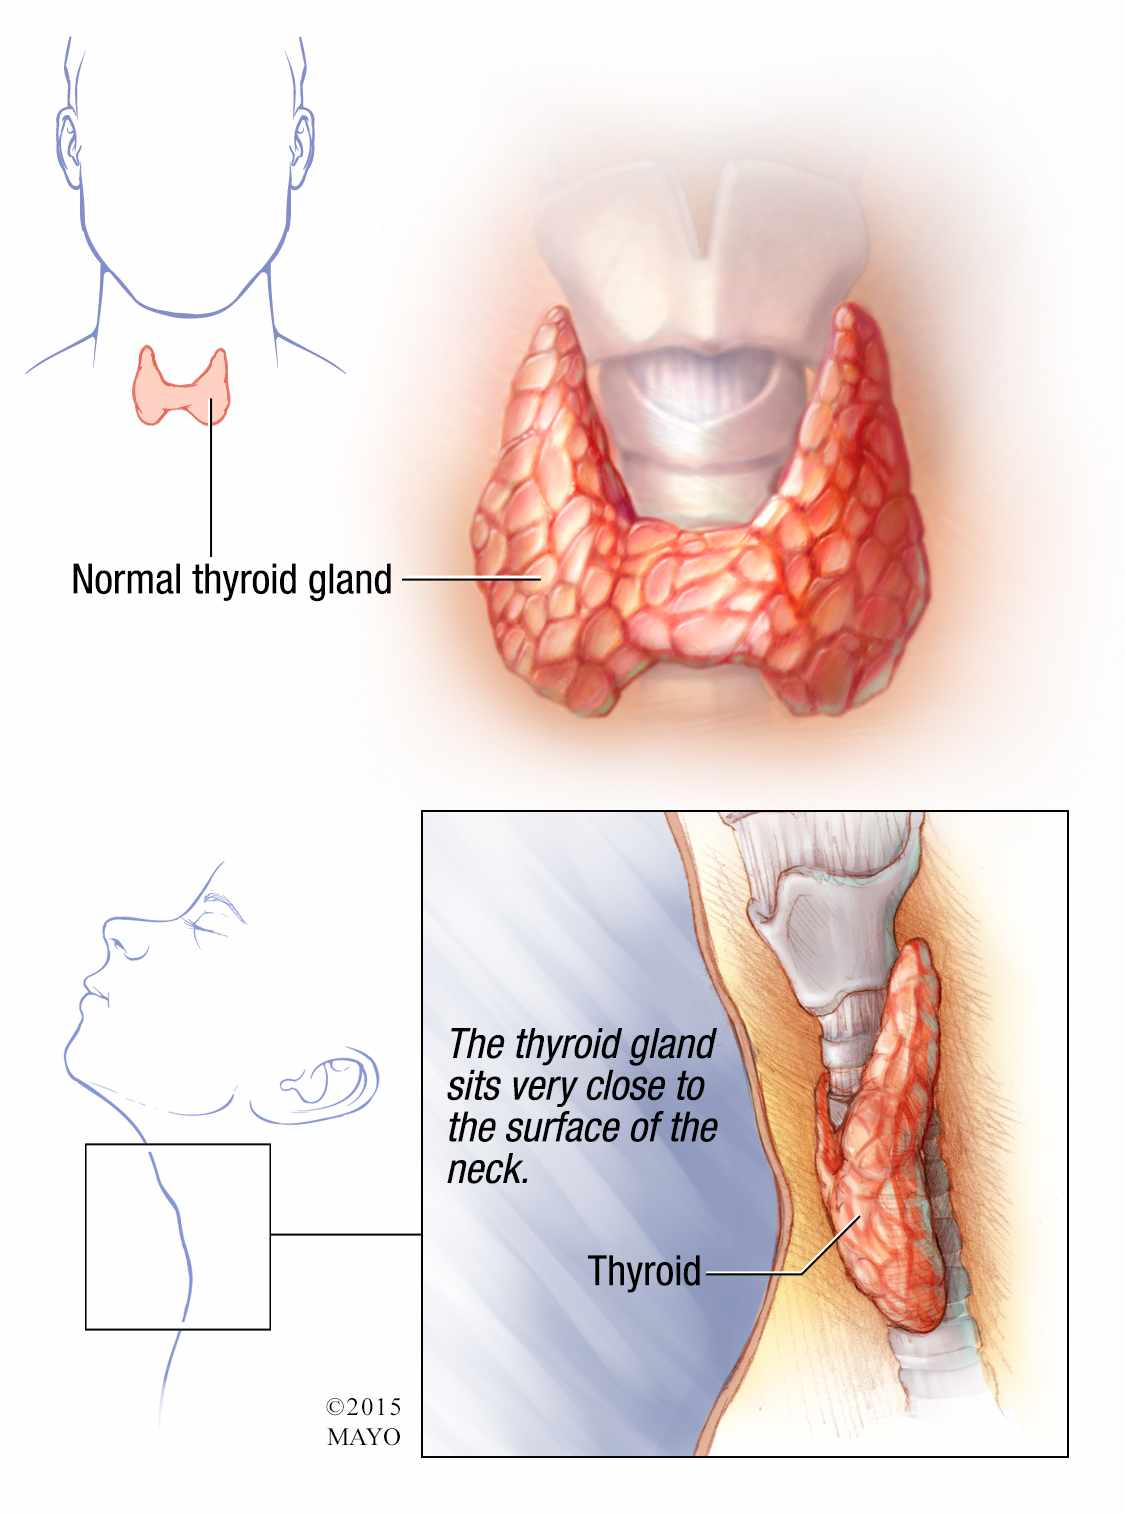 Thyroid Disease Can Diminish Quality Of Life Mayo Clinic News Network